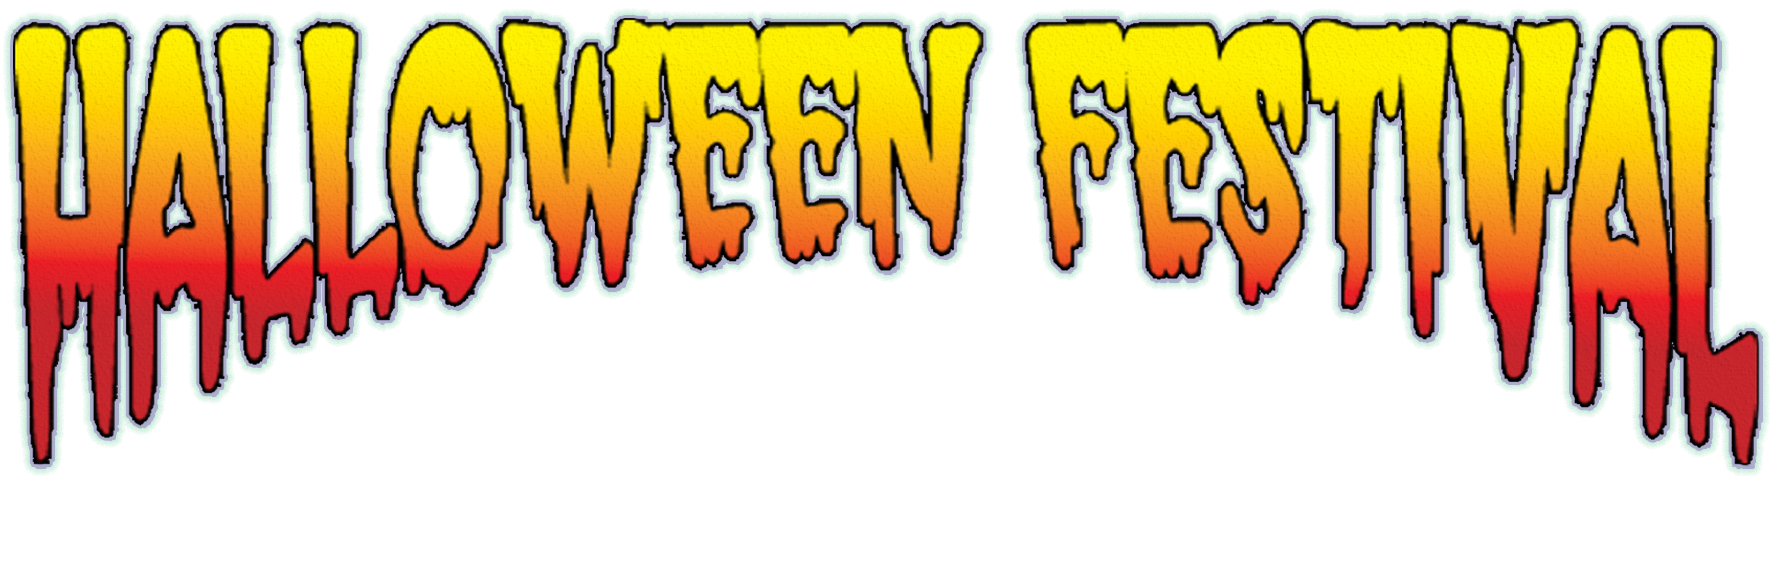 Tickets for Halloween Festival 2020 in Muskogee from ShowClix